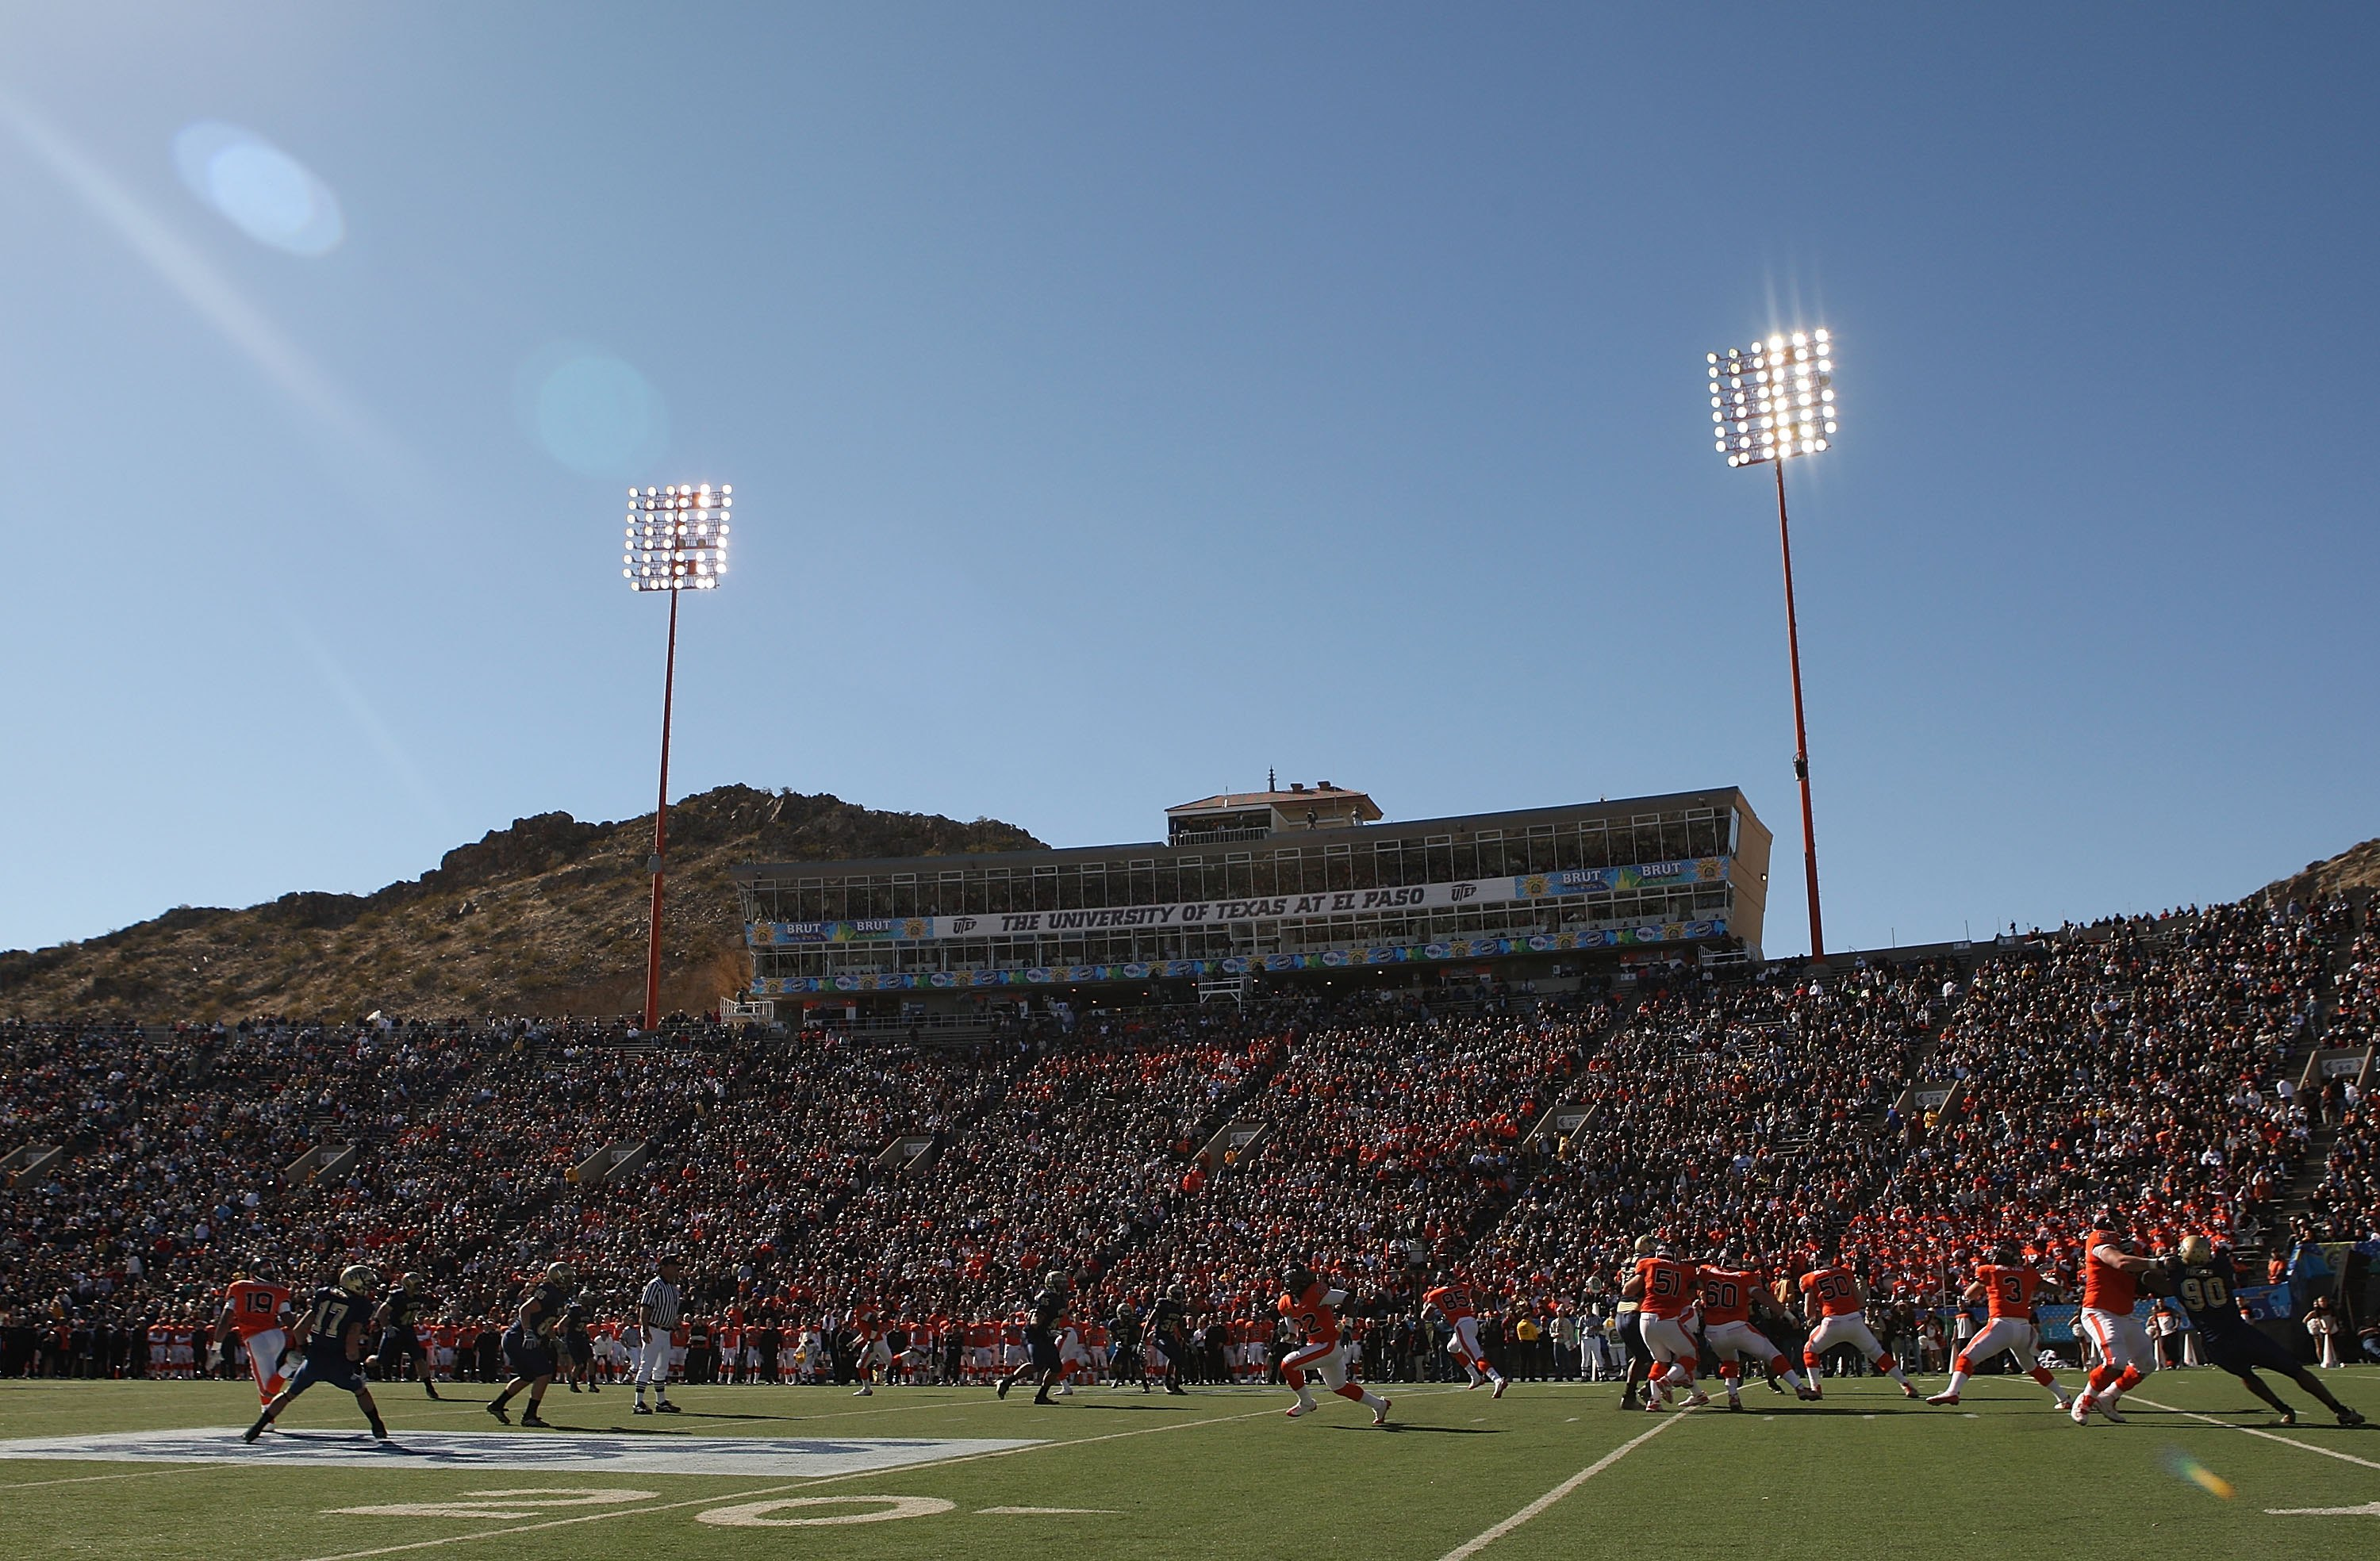 EL PASO, TX - DECEMBER 31:  The Oregon State Beavers and the Pittsburgh Panthers during the Brut Sun Bowl on December 31, 2008 at the Sun Bowl in El Paso, Texas.  (Photo by Ronald Martinez/Getty Images)